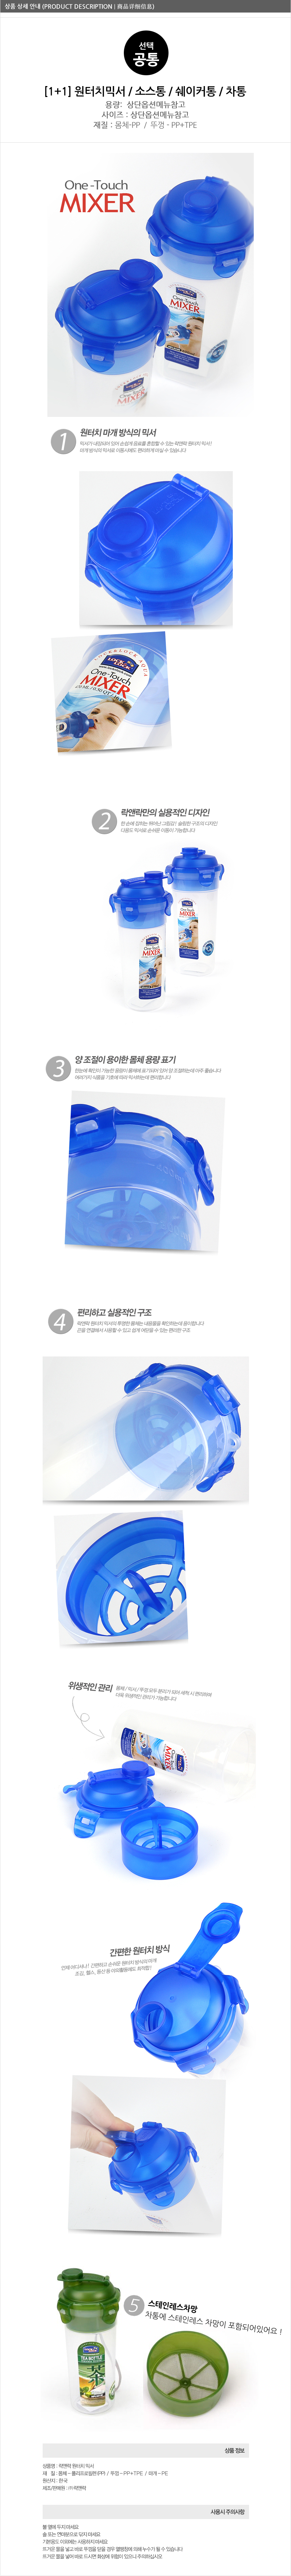 Interpark Locklock One Touch Food Container 690ml With Mixer Shipping Return And Exchange